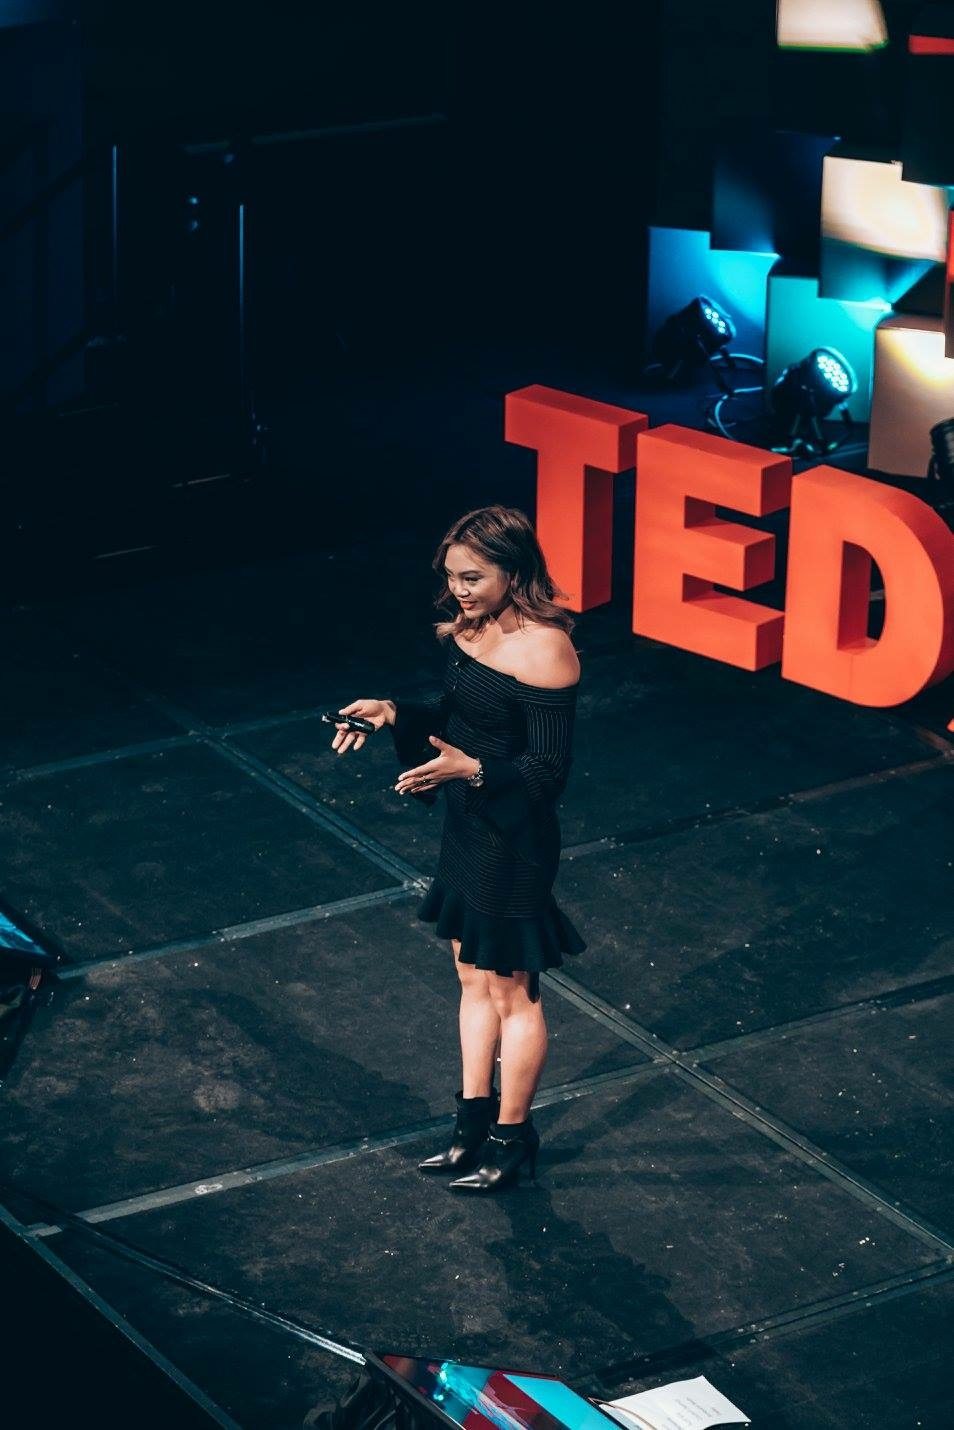 TEDx: Decoding the Stigma of Personal Development